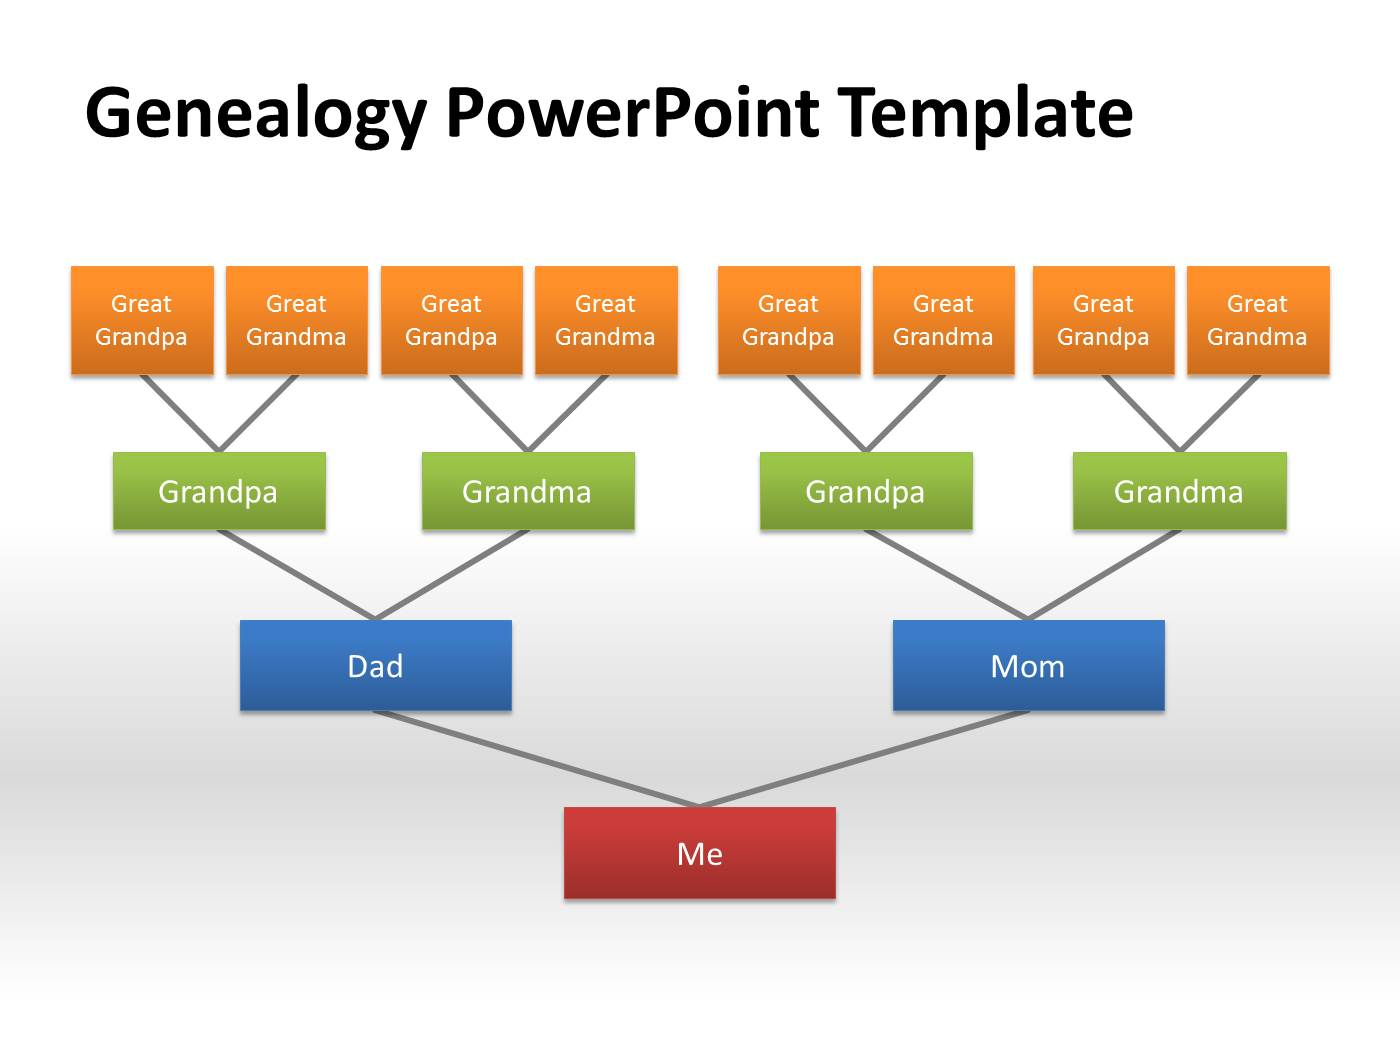 Genealogy powerpoint templatepptx powerpoint presentation ppt alramifo Choice Image